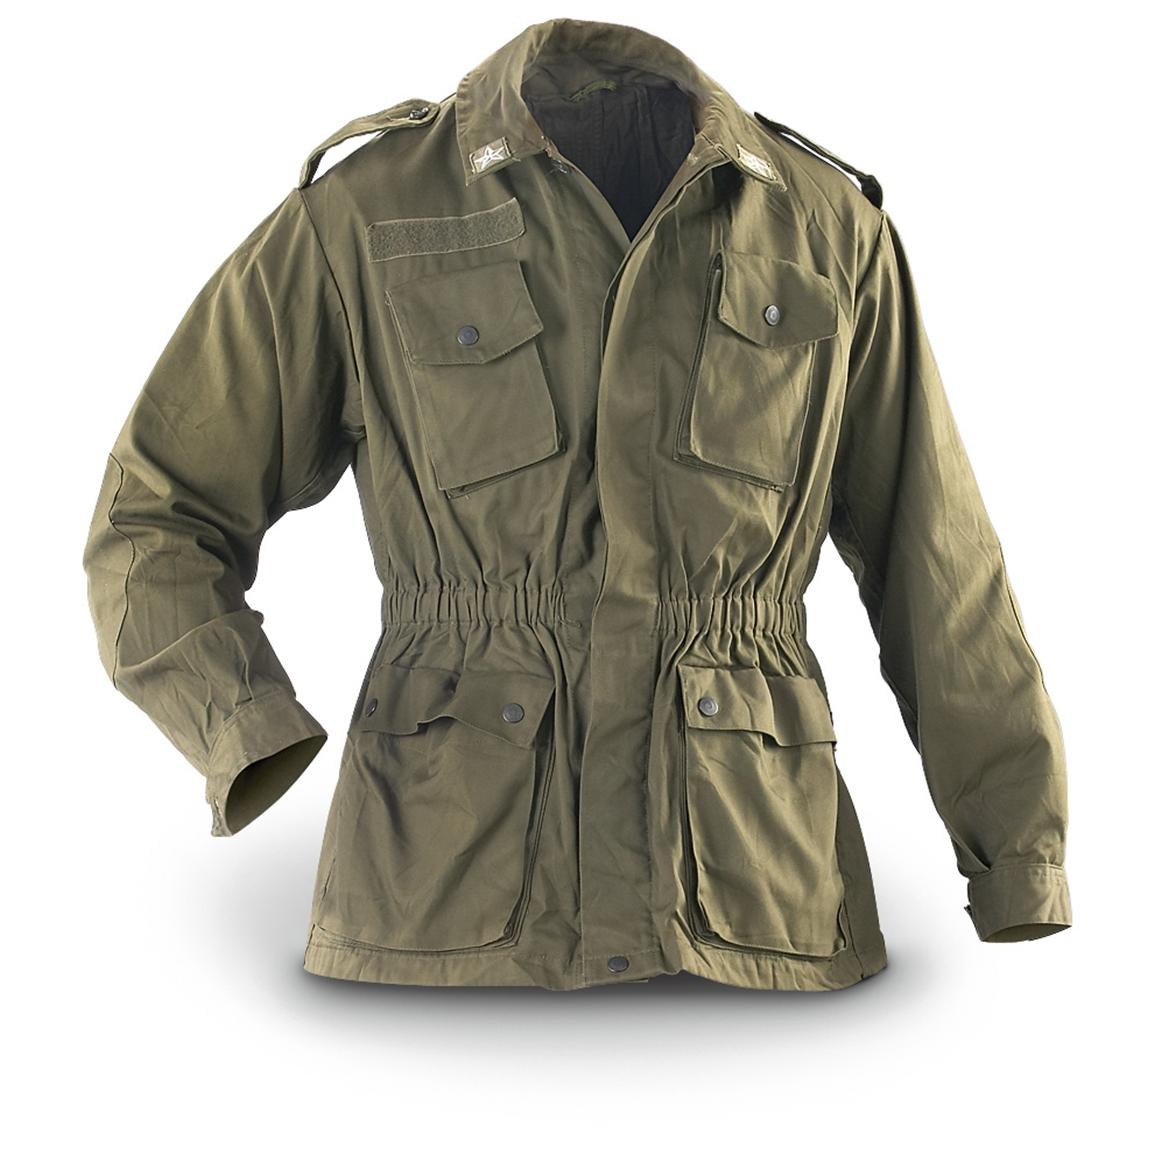 military jacket 2 used italian military combat jackets, olive drab qxstwjs